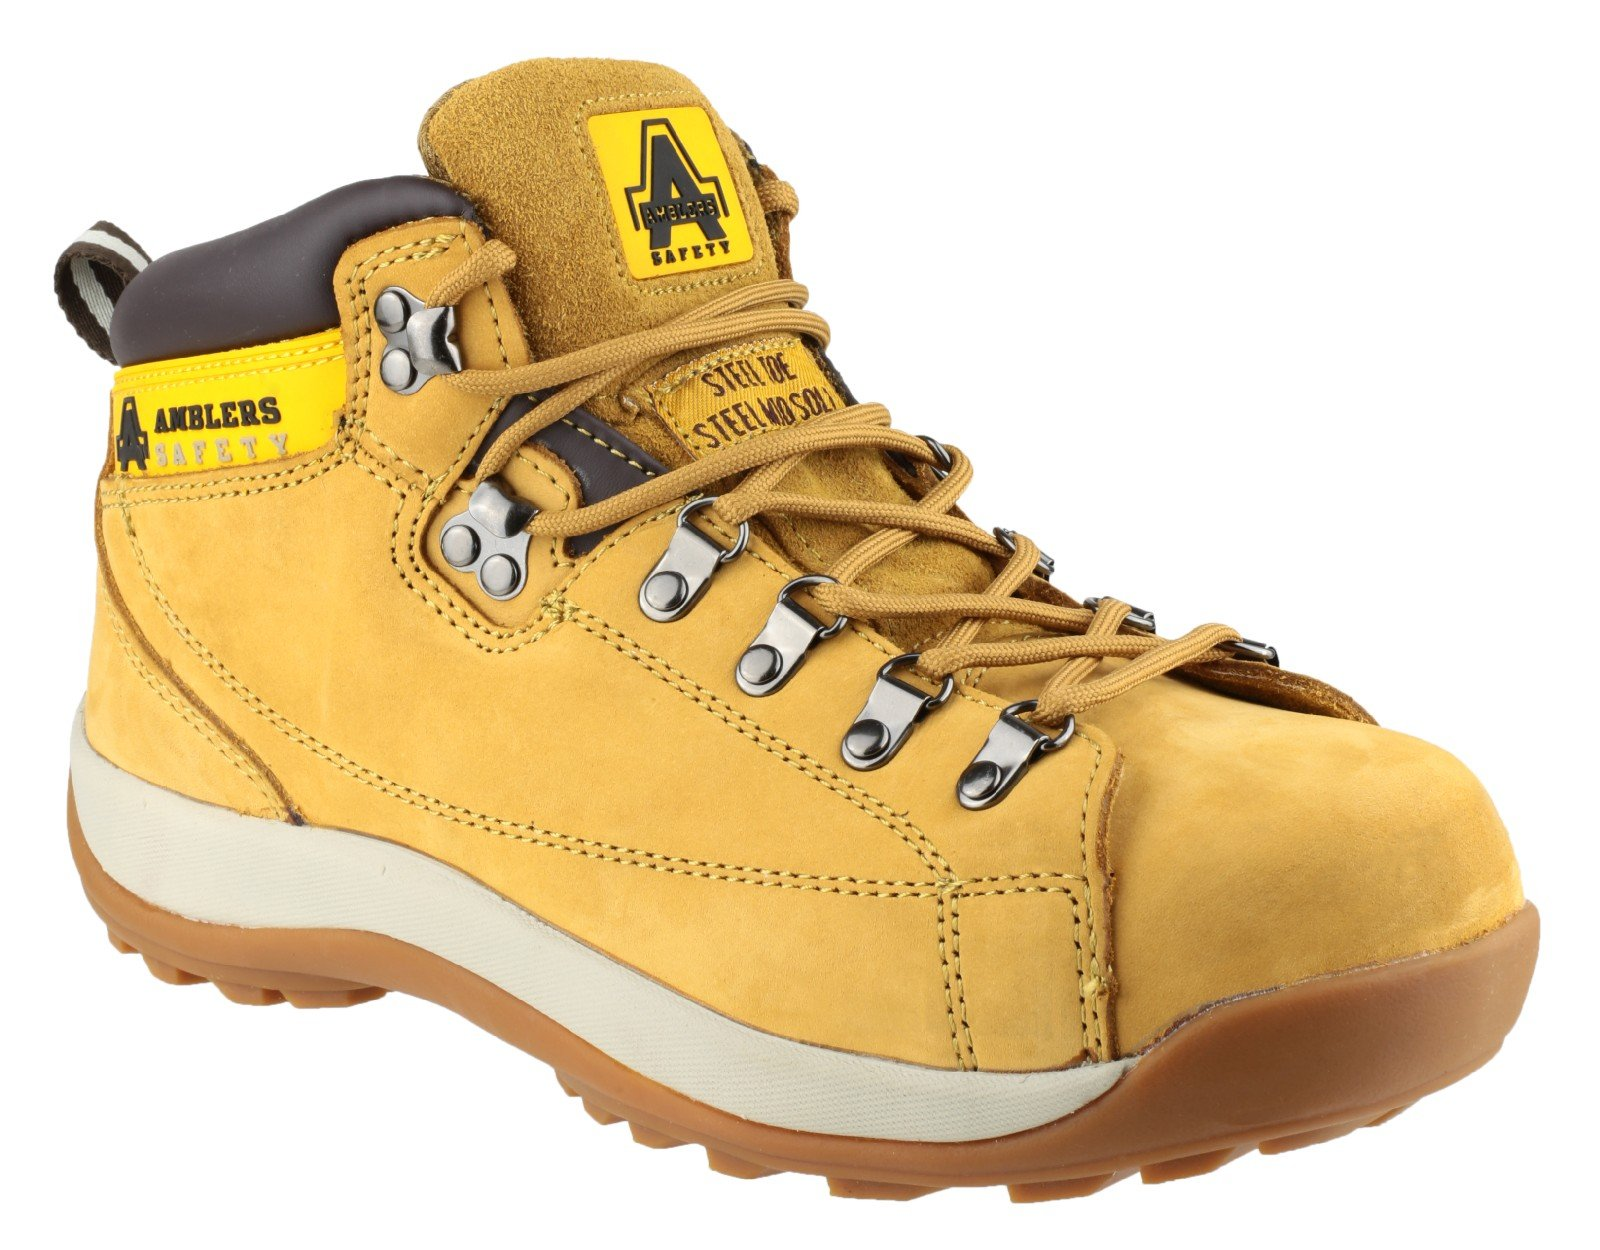 Amblers Steel Lace-Up Textile Lined Mens Boots - Honey - Size 11